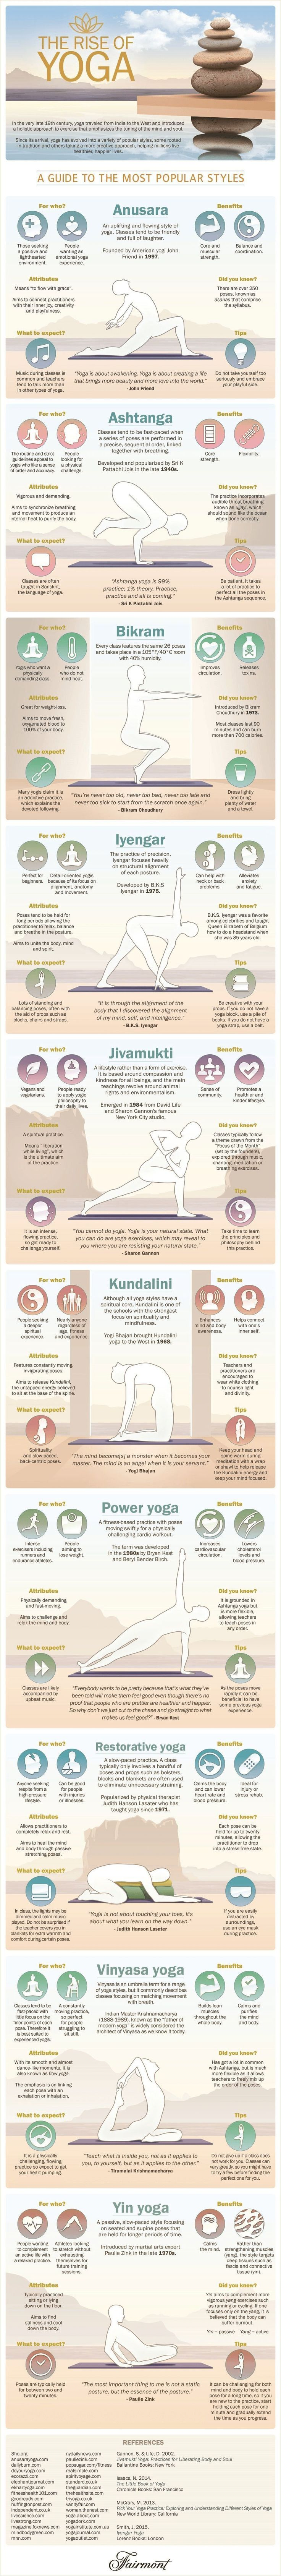 Yoga got your head spinning? A quick guide to which type might be your perfect match.   Fit Bottomed Girls Get the best of yoga poses and position for quick weight loss and fit body. Click here to learn more - http://fitnesssnap.com